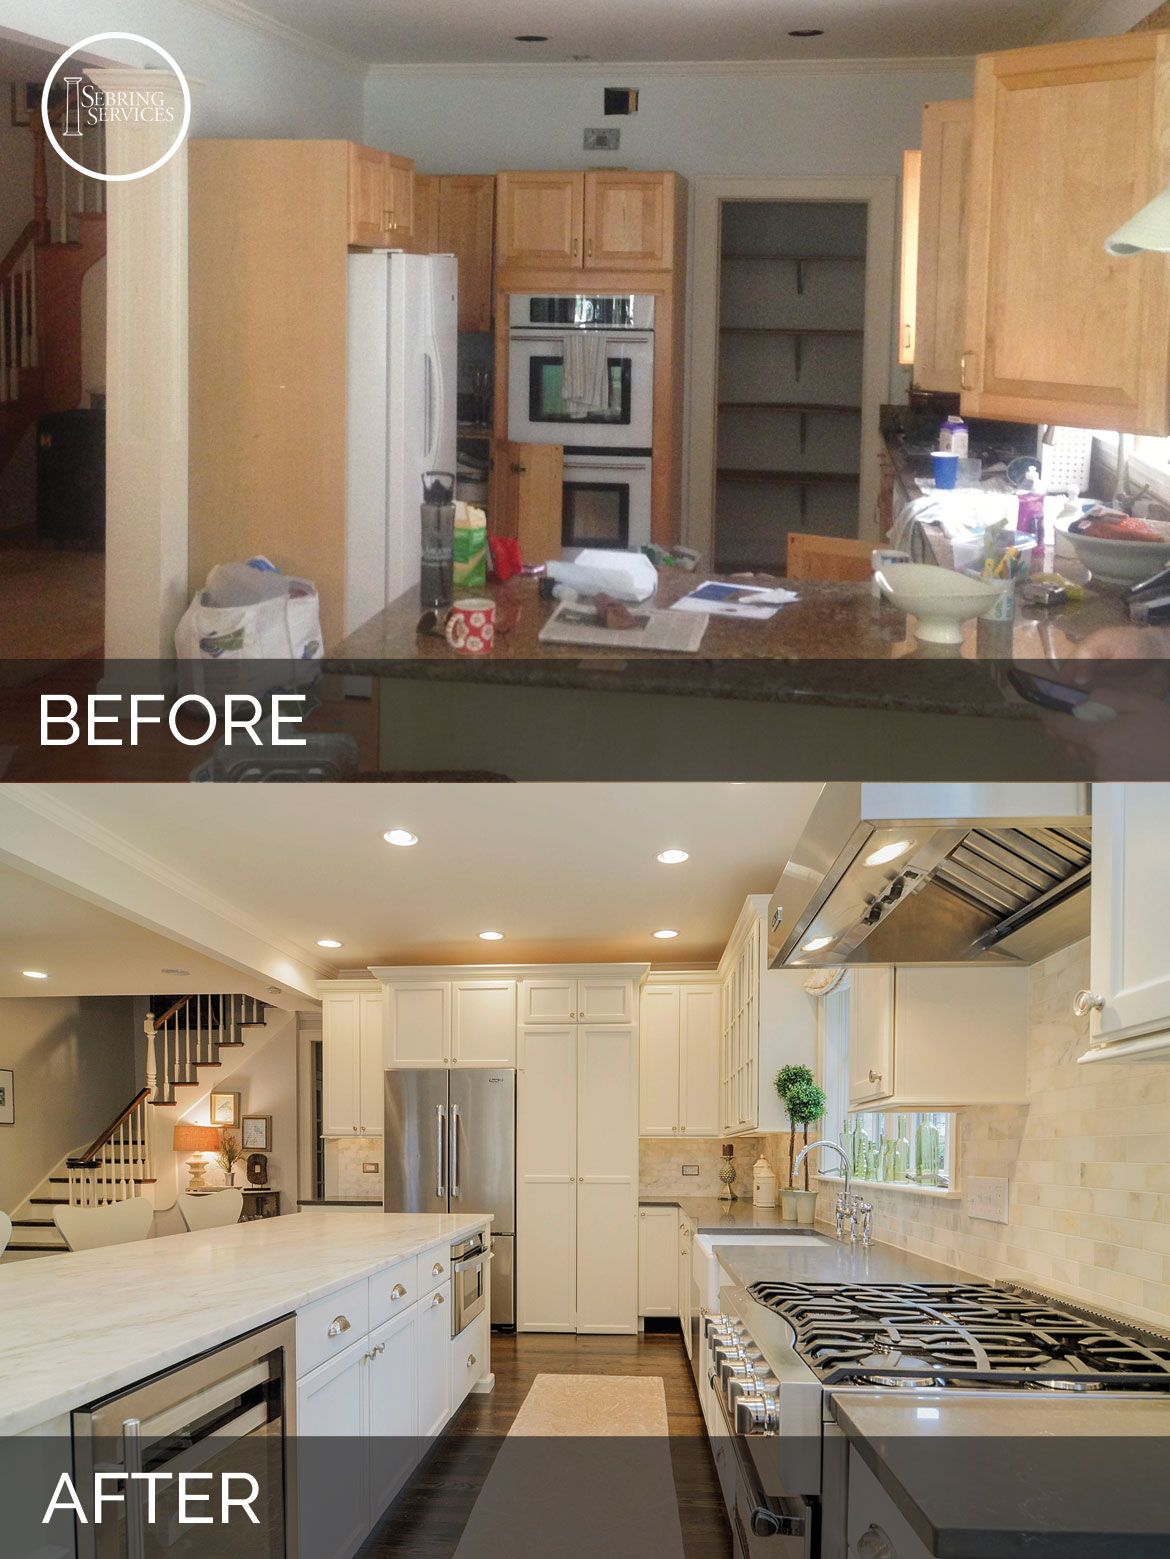 Ben ellen 39 s kitchen before after pictures kitchens for How to redo your kitchen